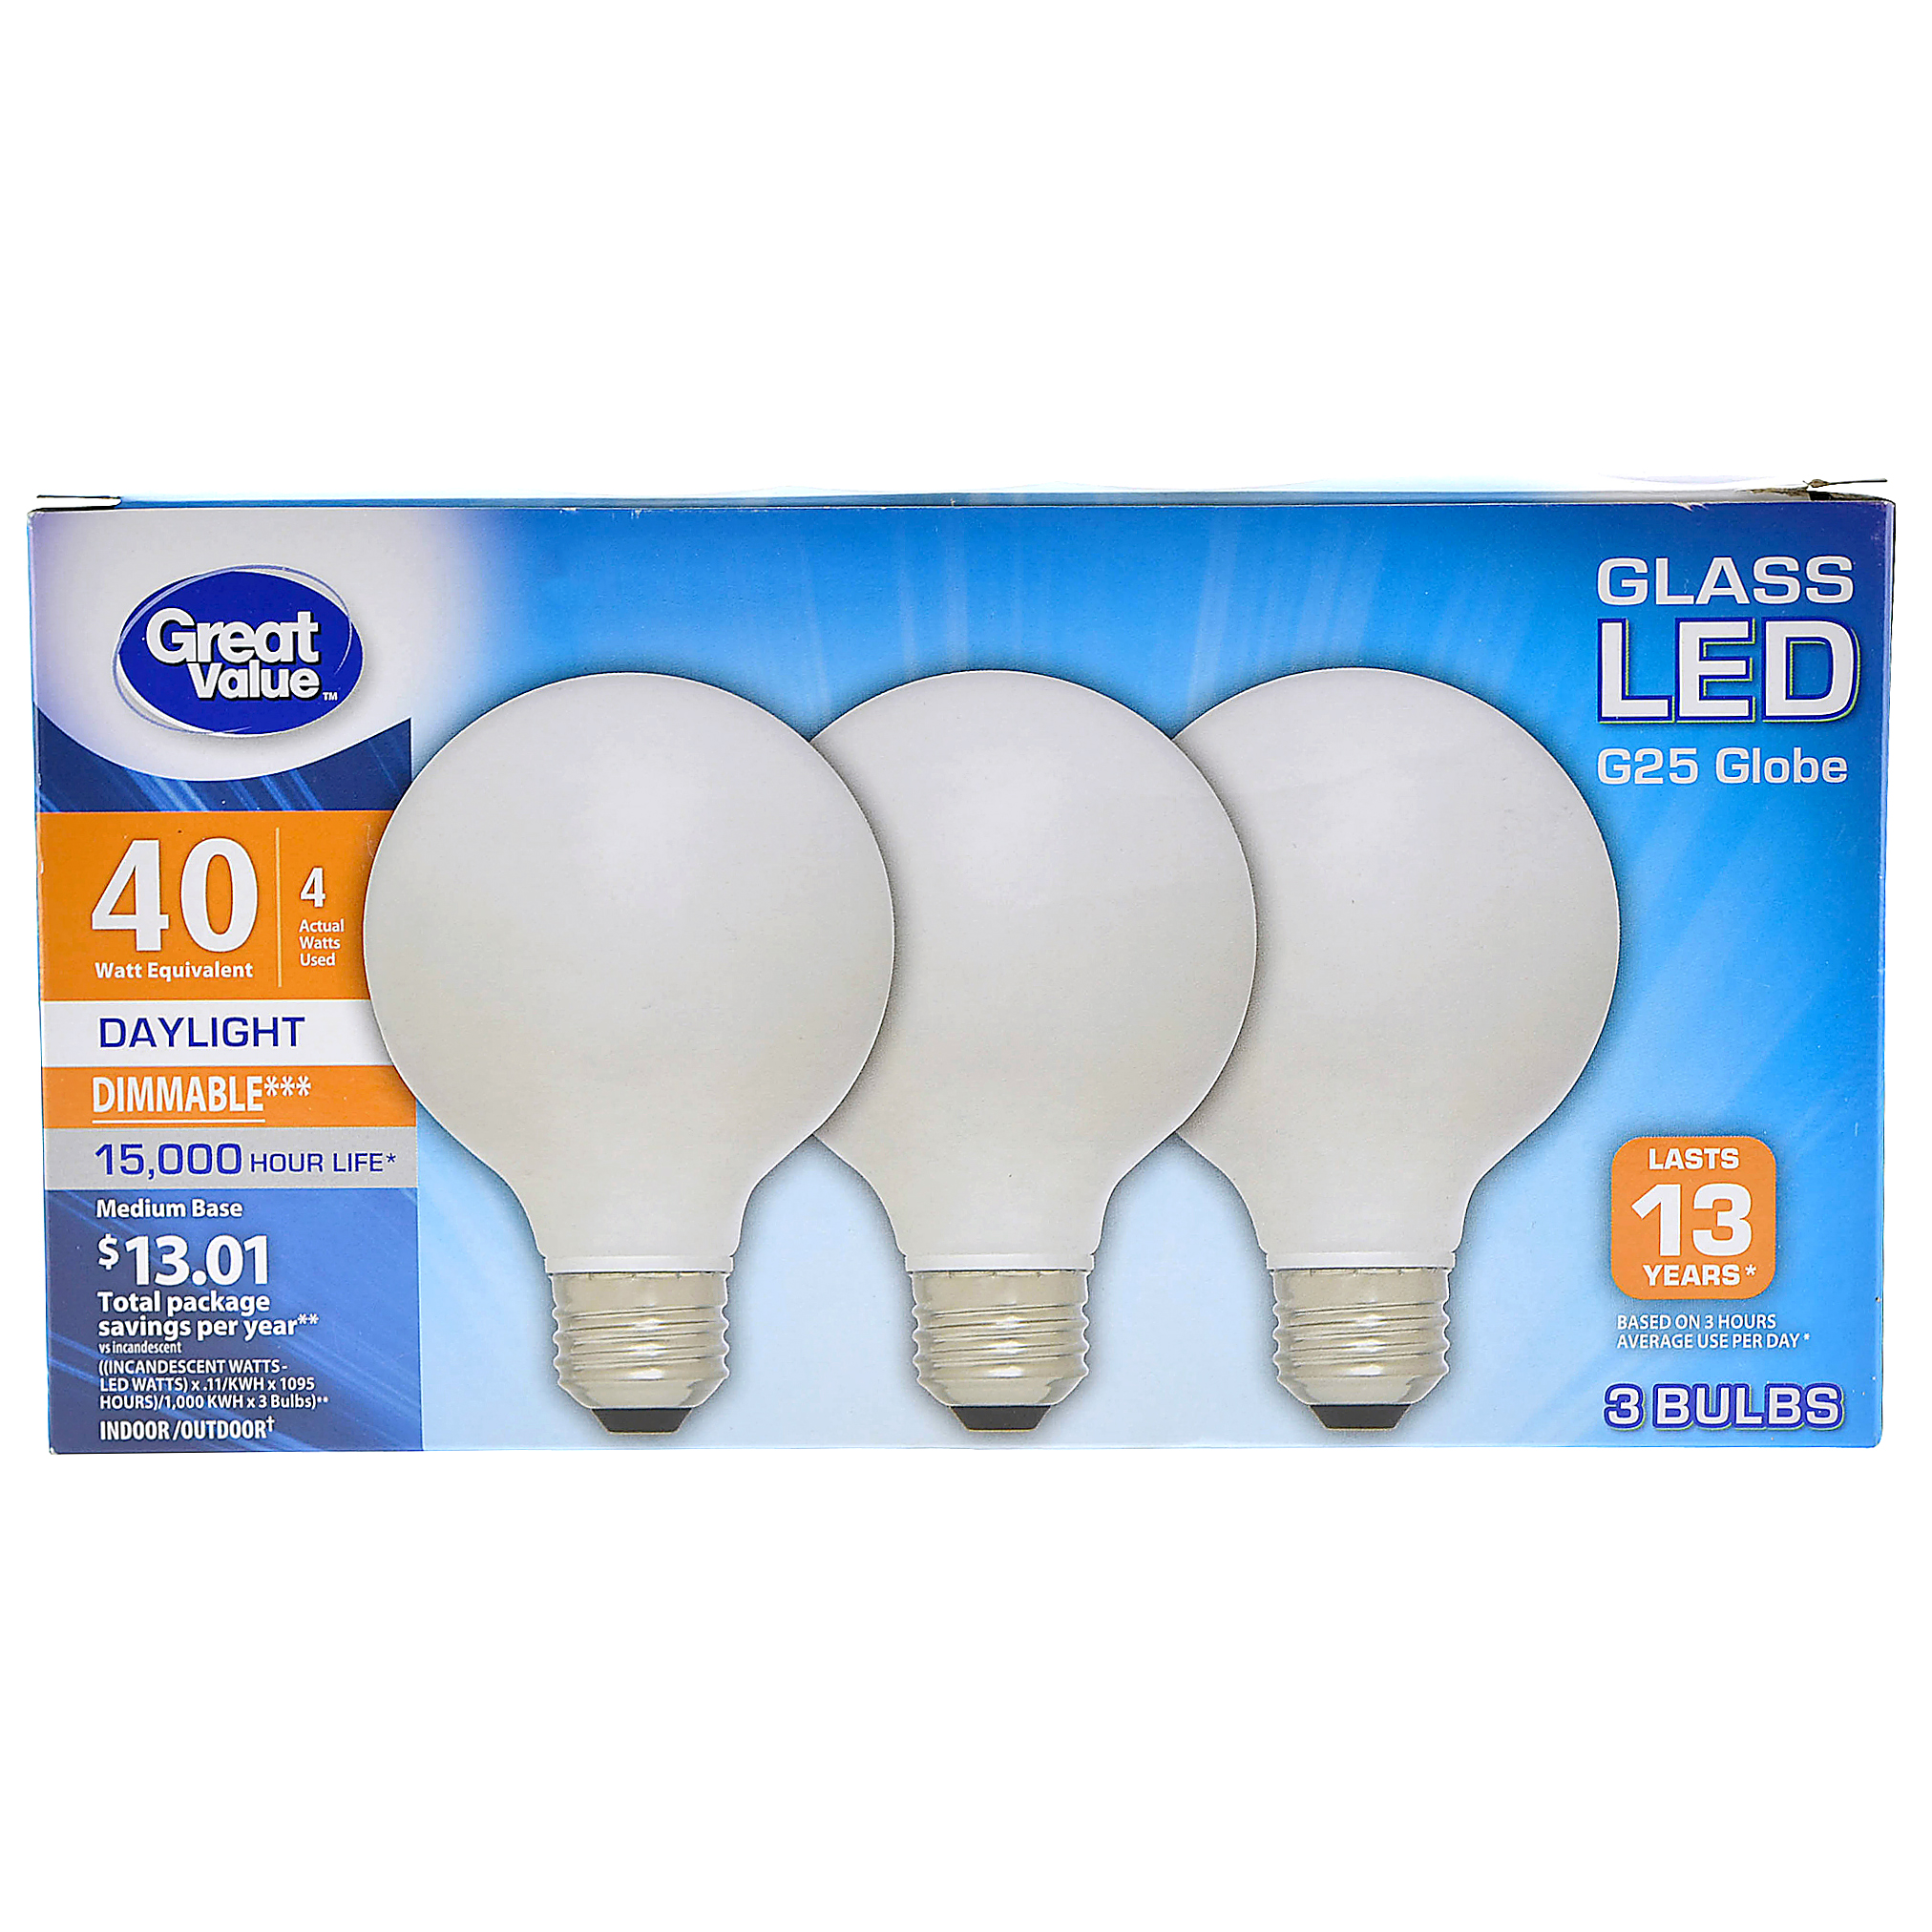 Great Value Glass LED G25 Globe Light 40W Equivalent, 4W Actual, 3 ct